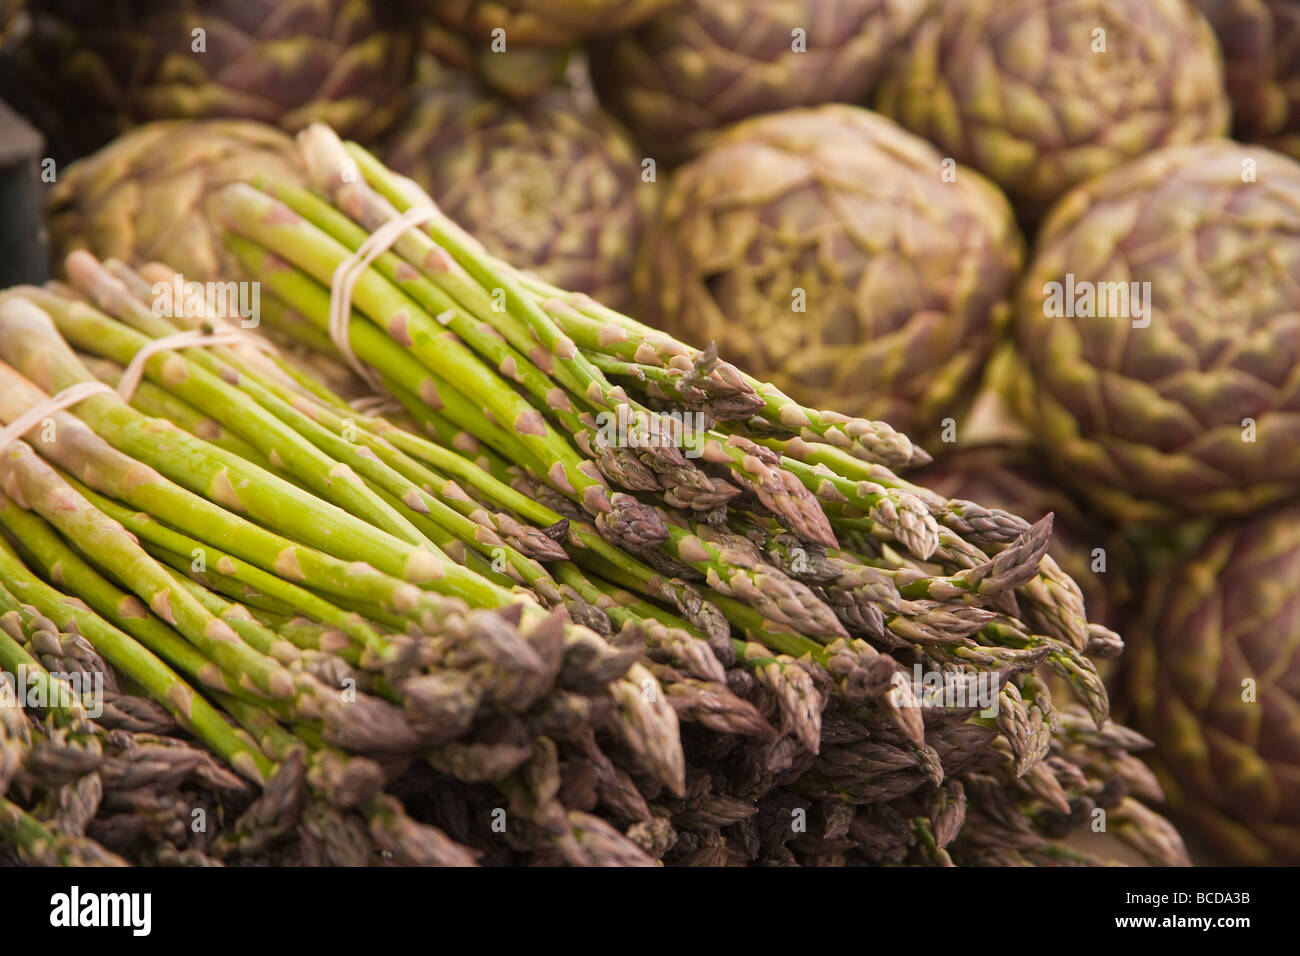 asparagus and artichokes Farmers Market Santa Barbara California United States of America Stock Photo